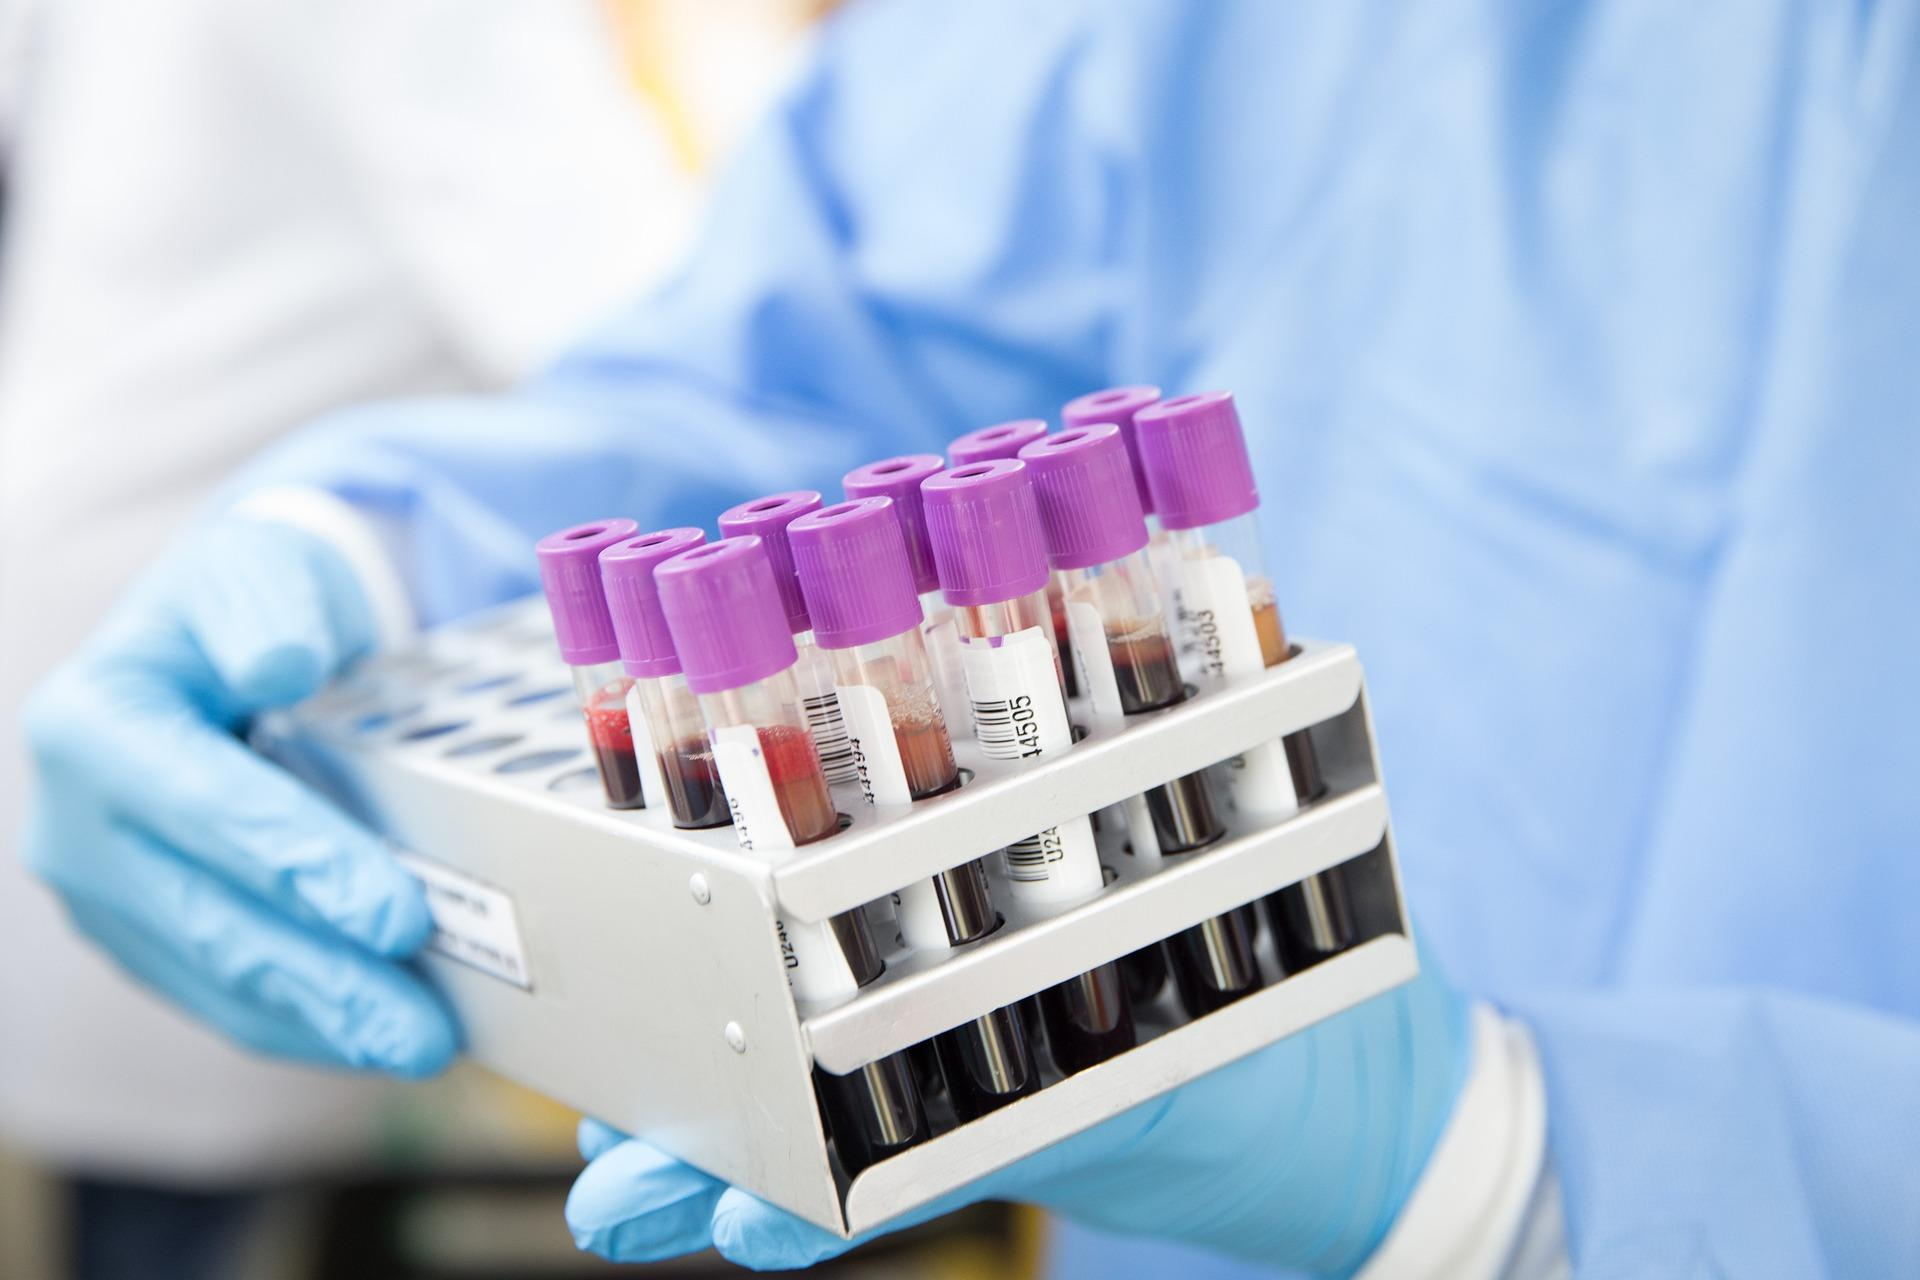 Image of blood vials in a laboratory